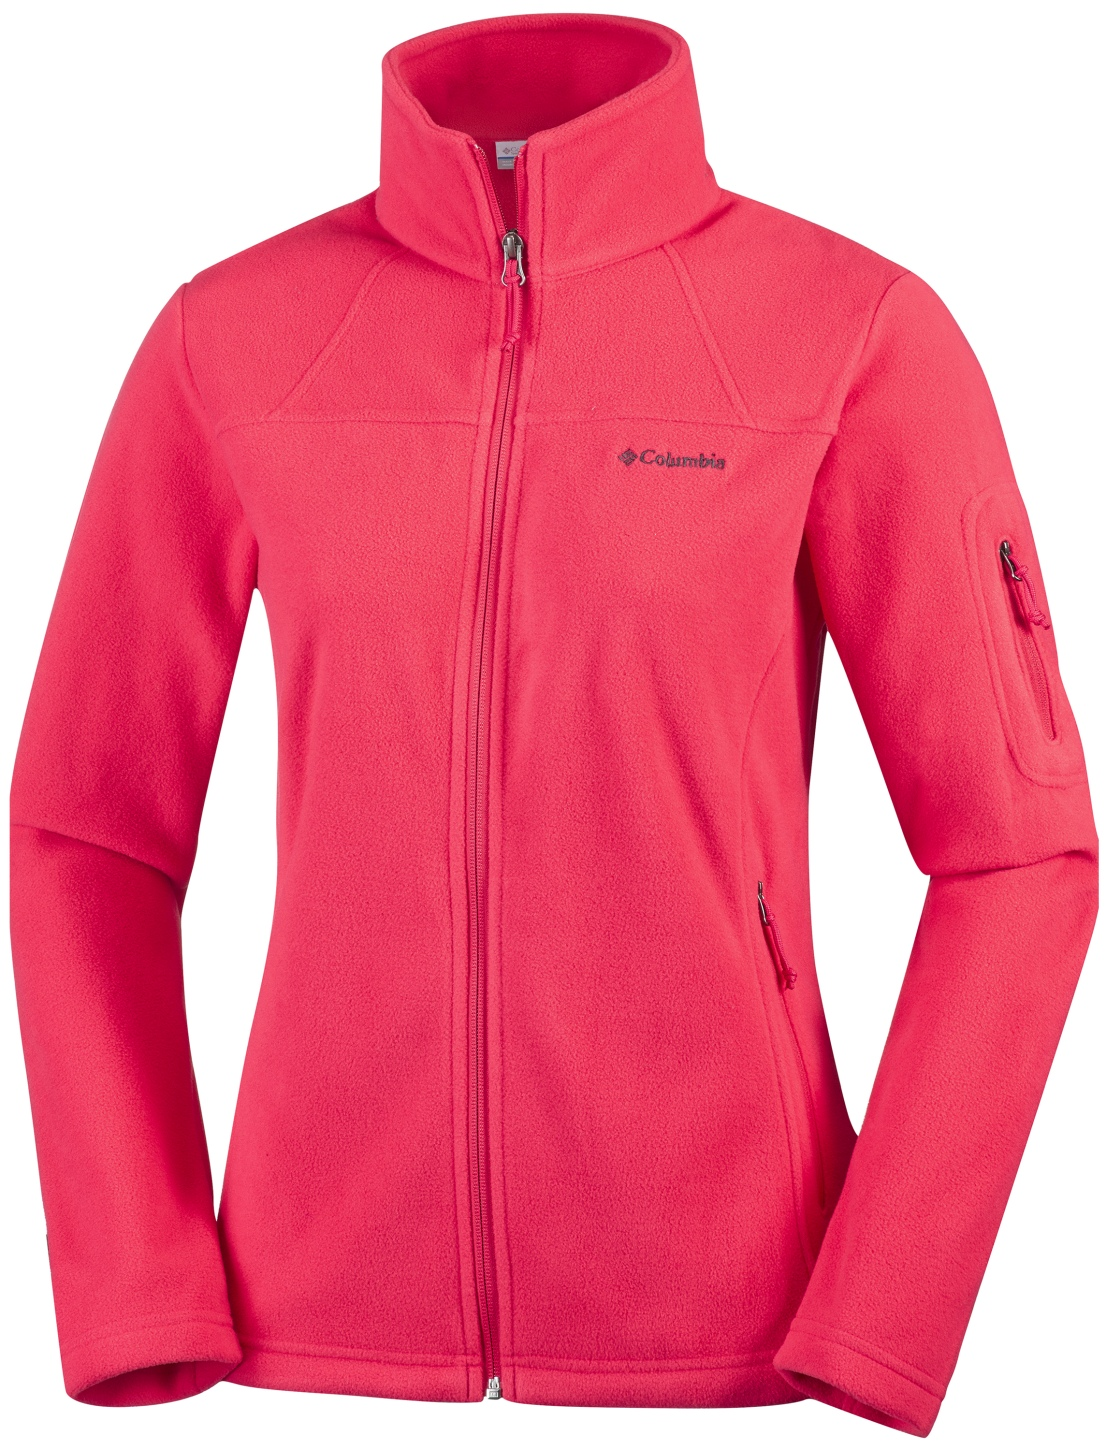 Columbia Women's Fast Trek II Jacket Red Camellia-30